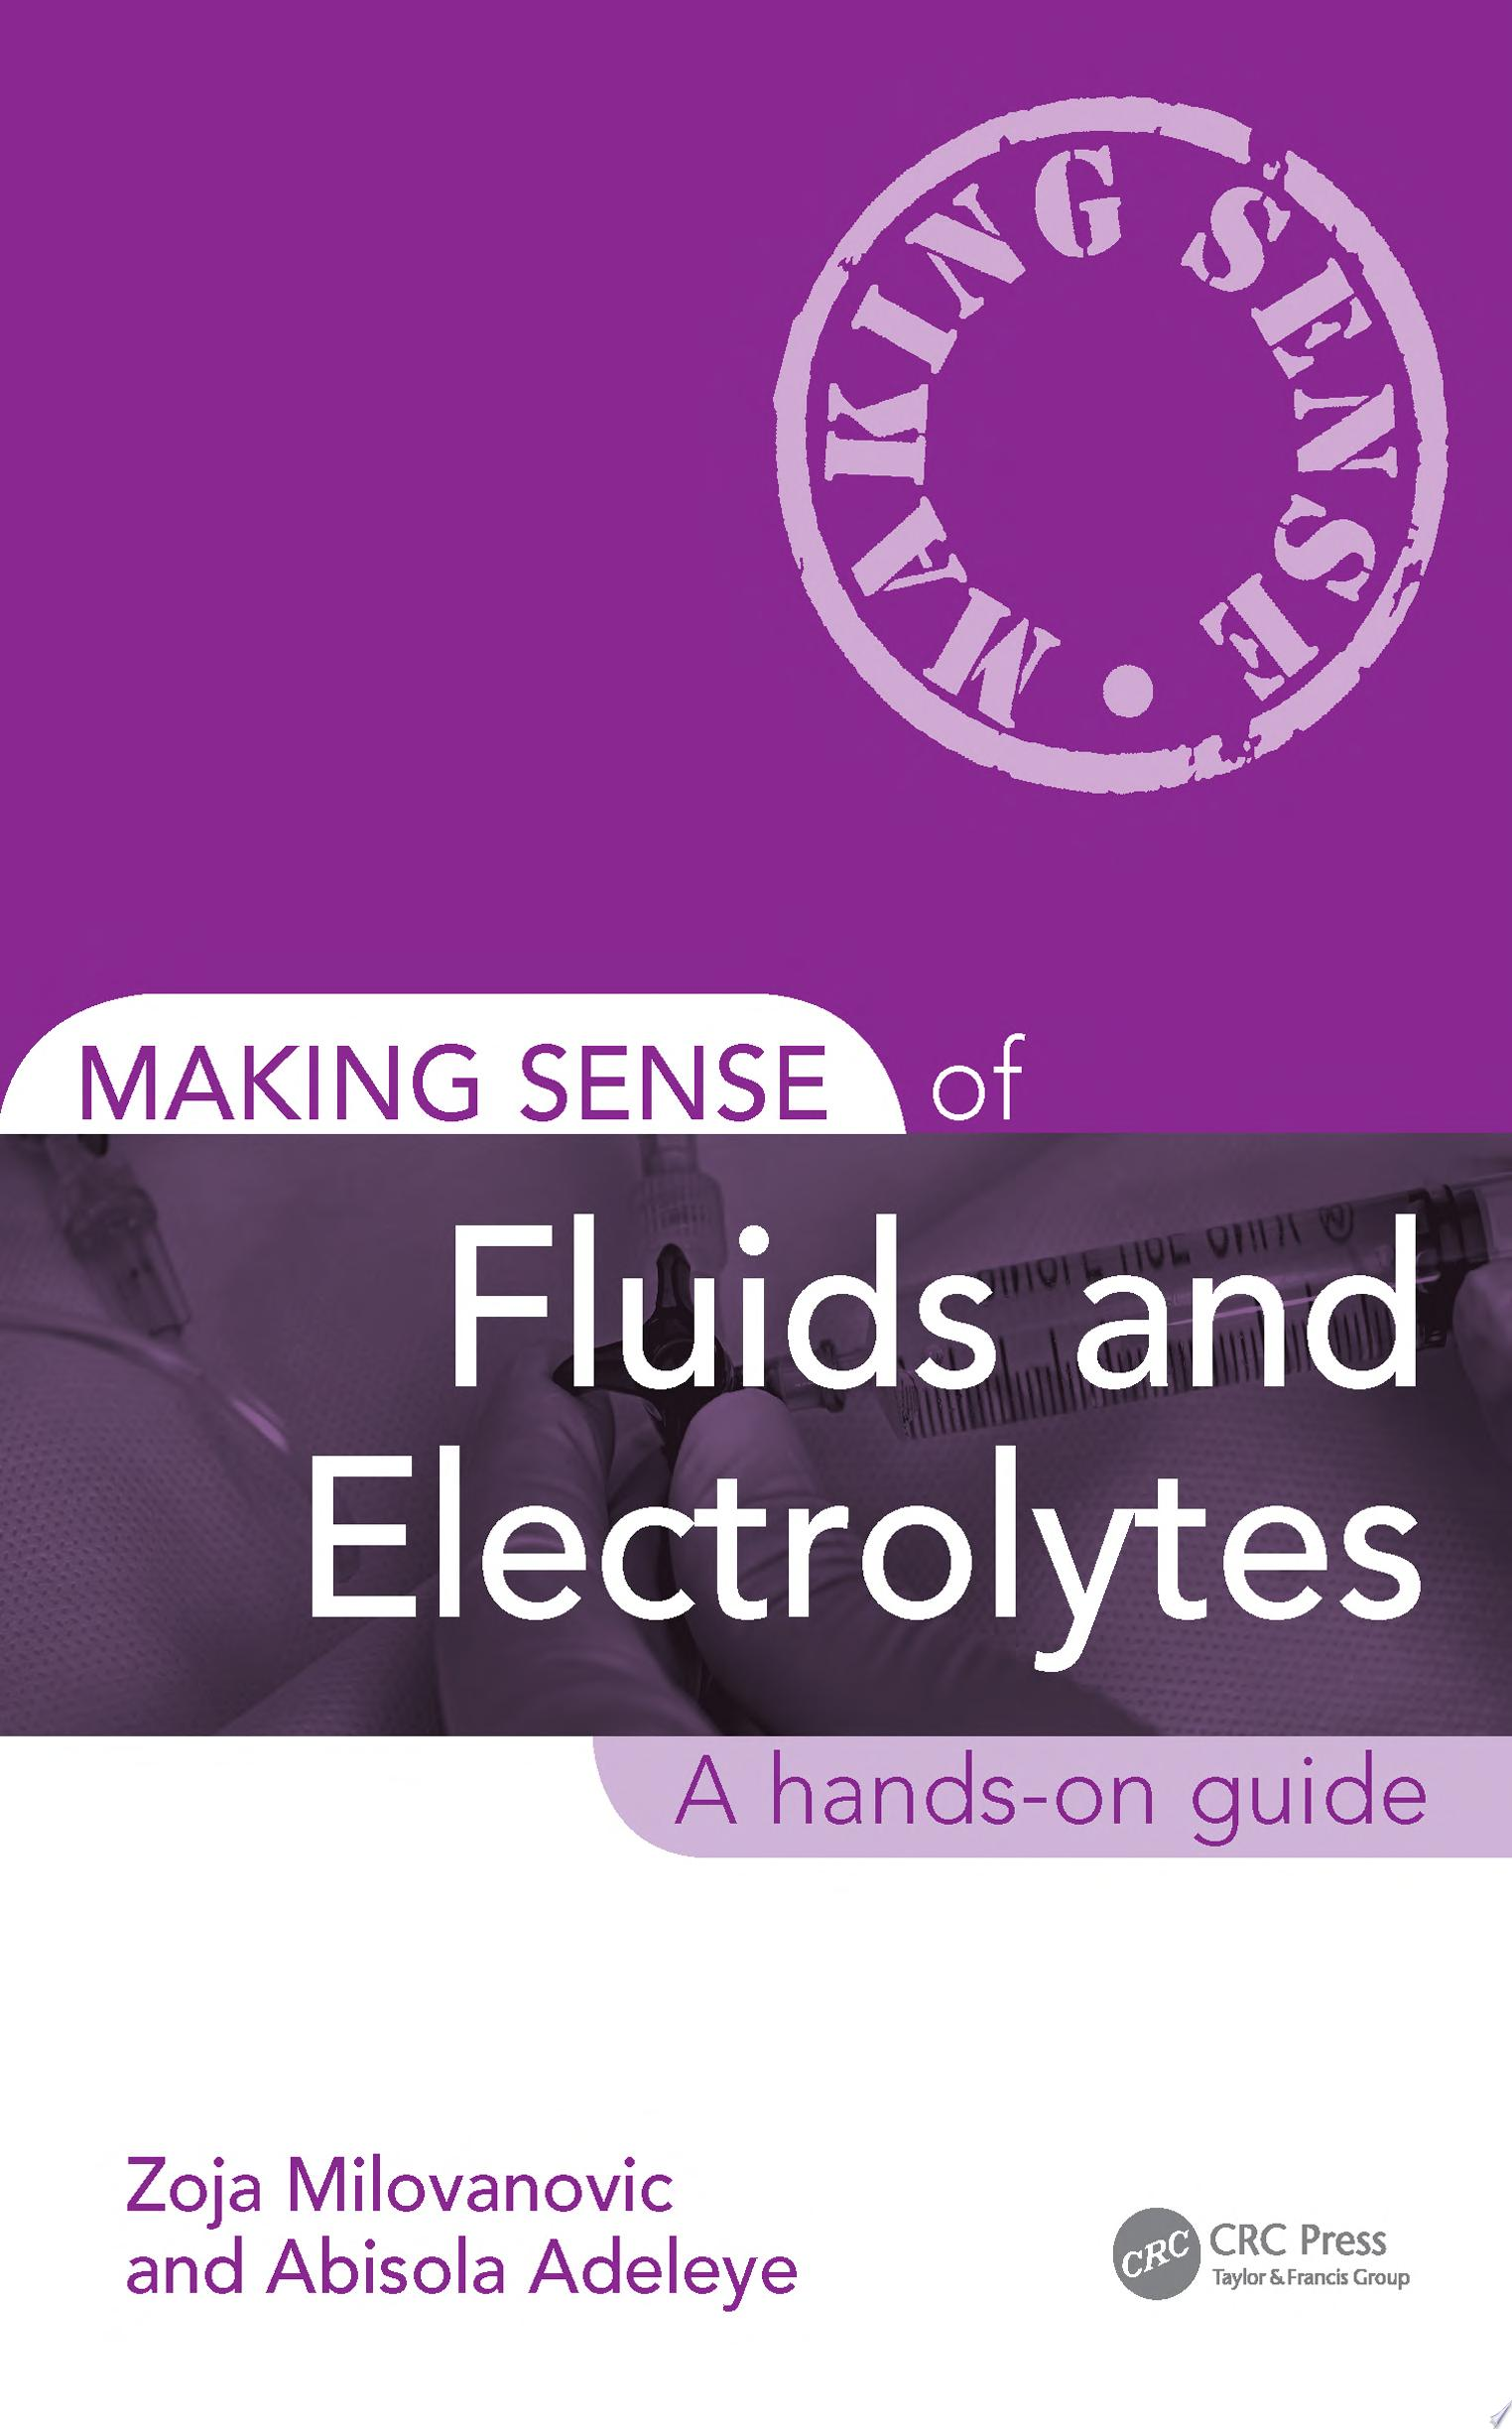 Making Sense of Fluids and Electrolytes